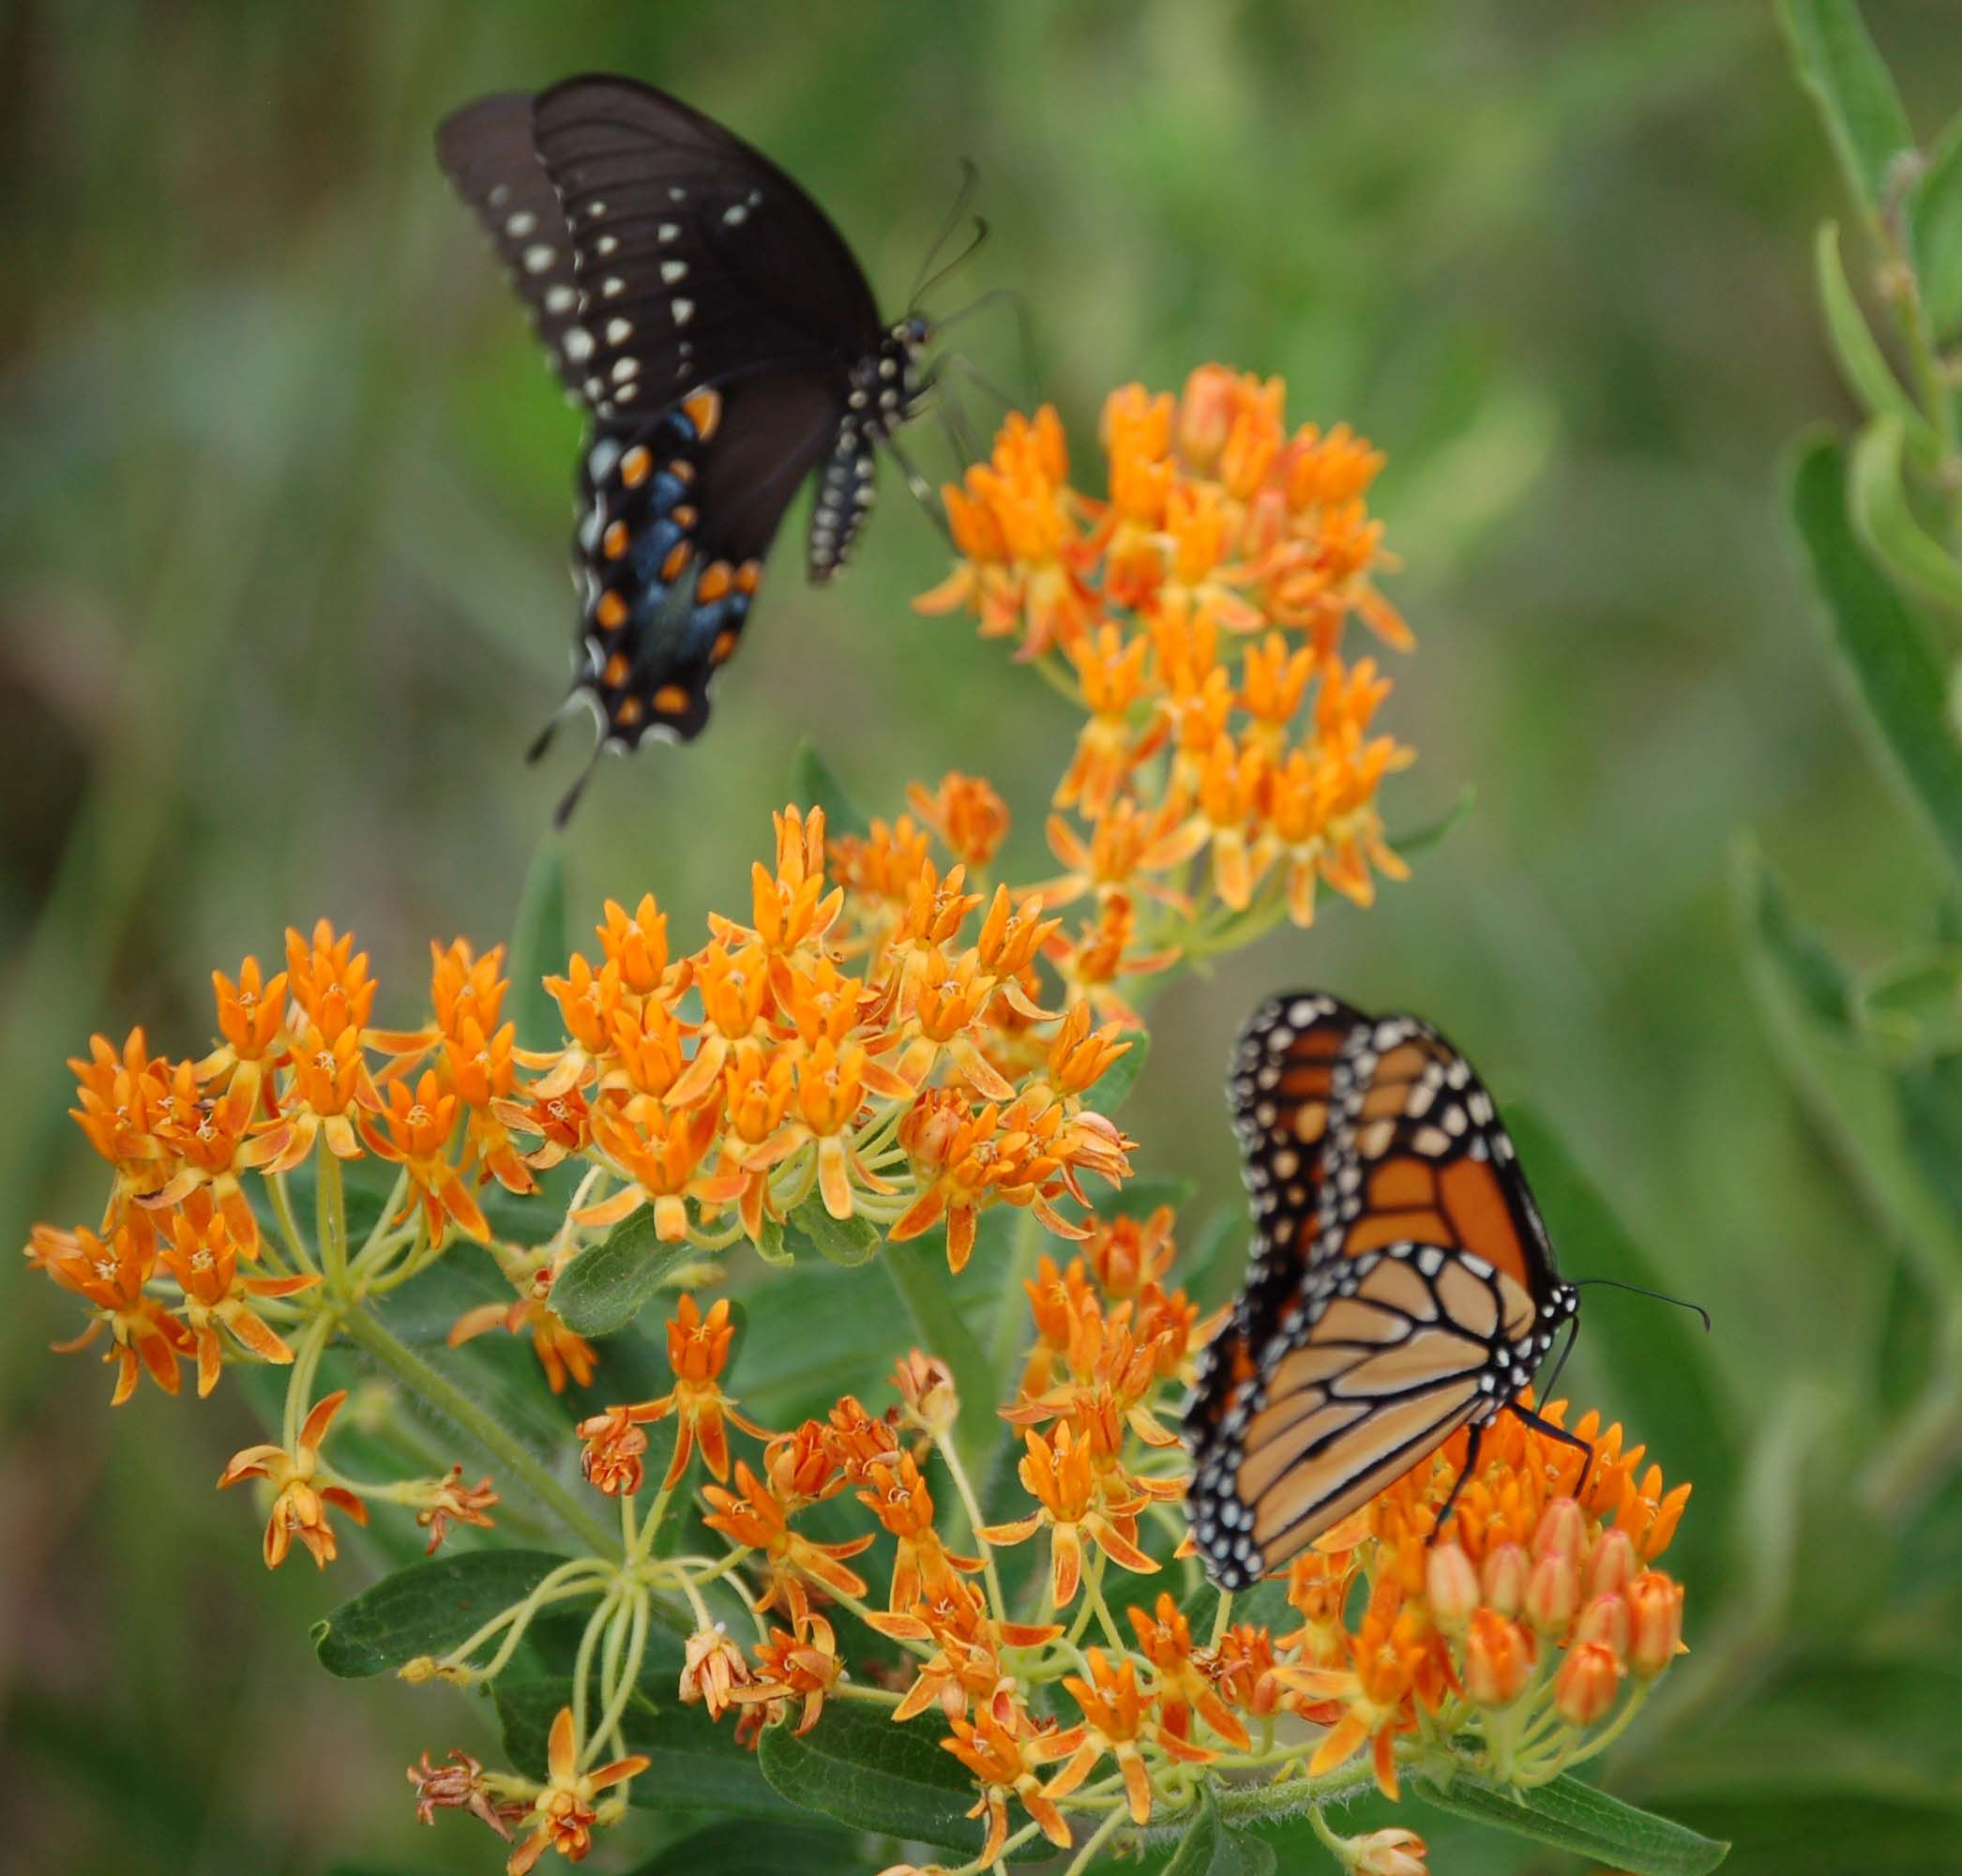 Attractive plantings like the milkweed, which draw monarch butterflies, are important for maintaining the ecosystem and plant health.